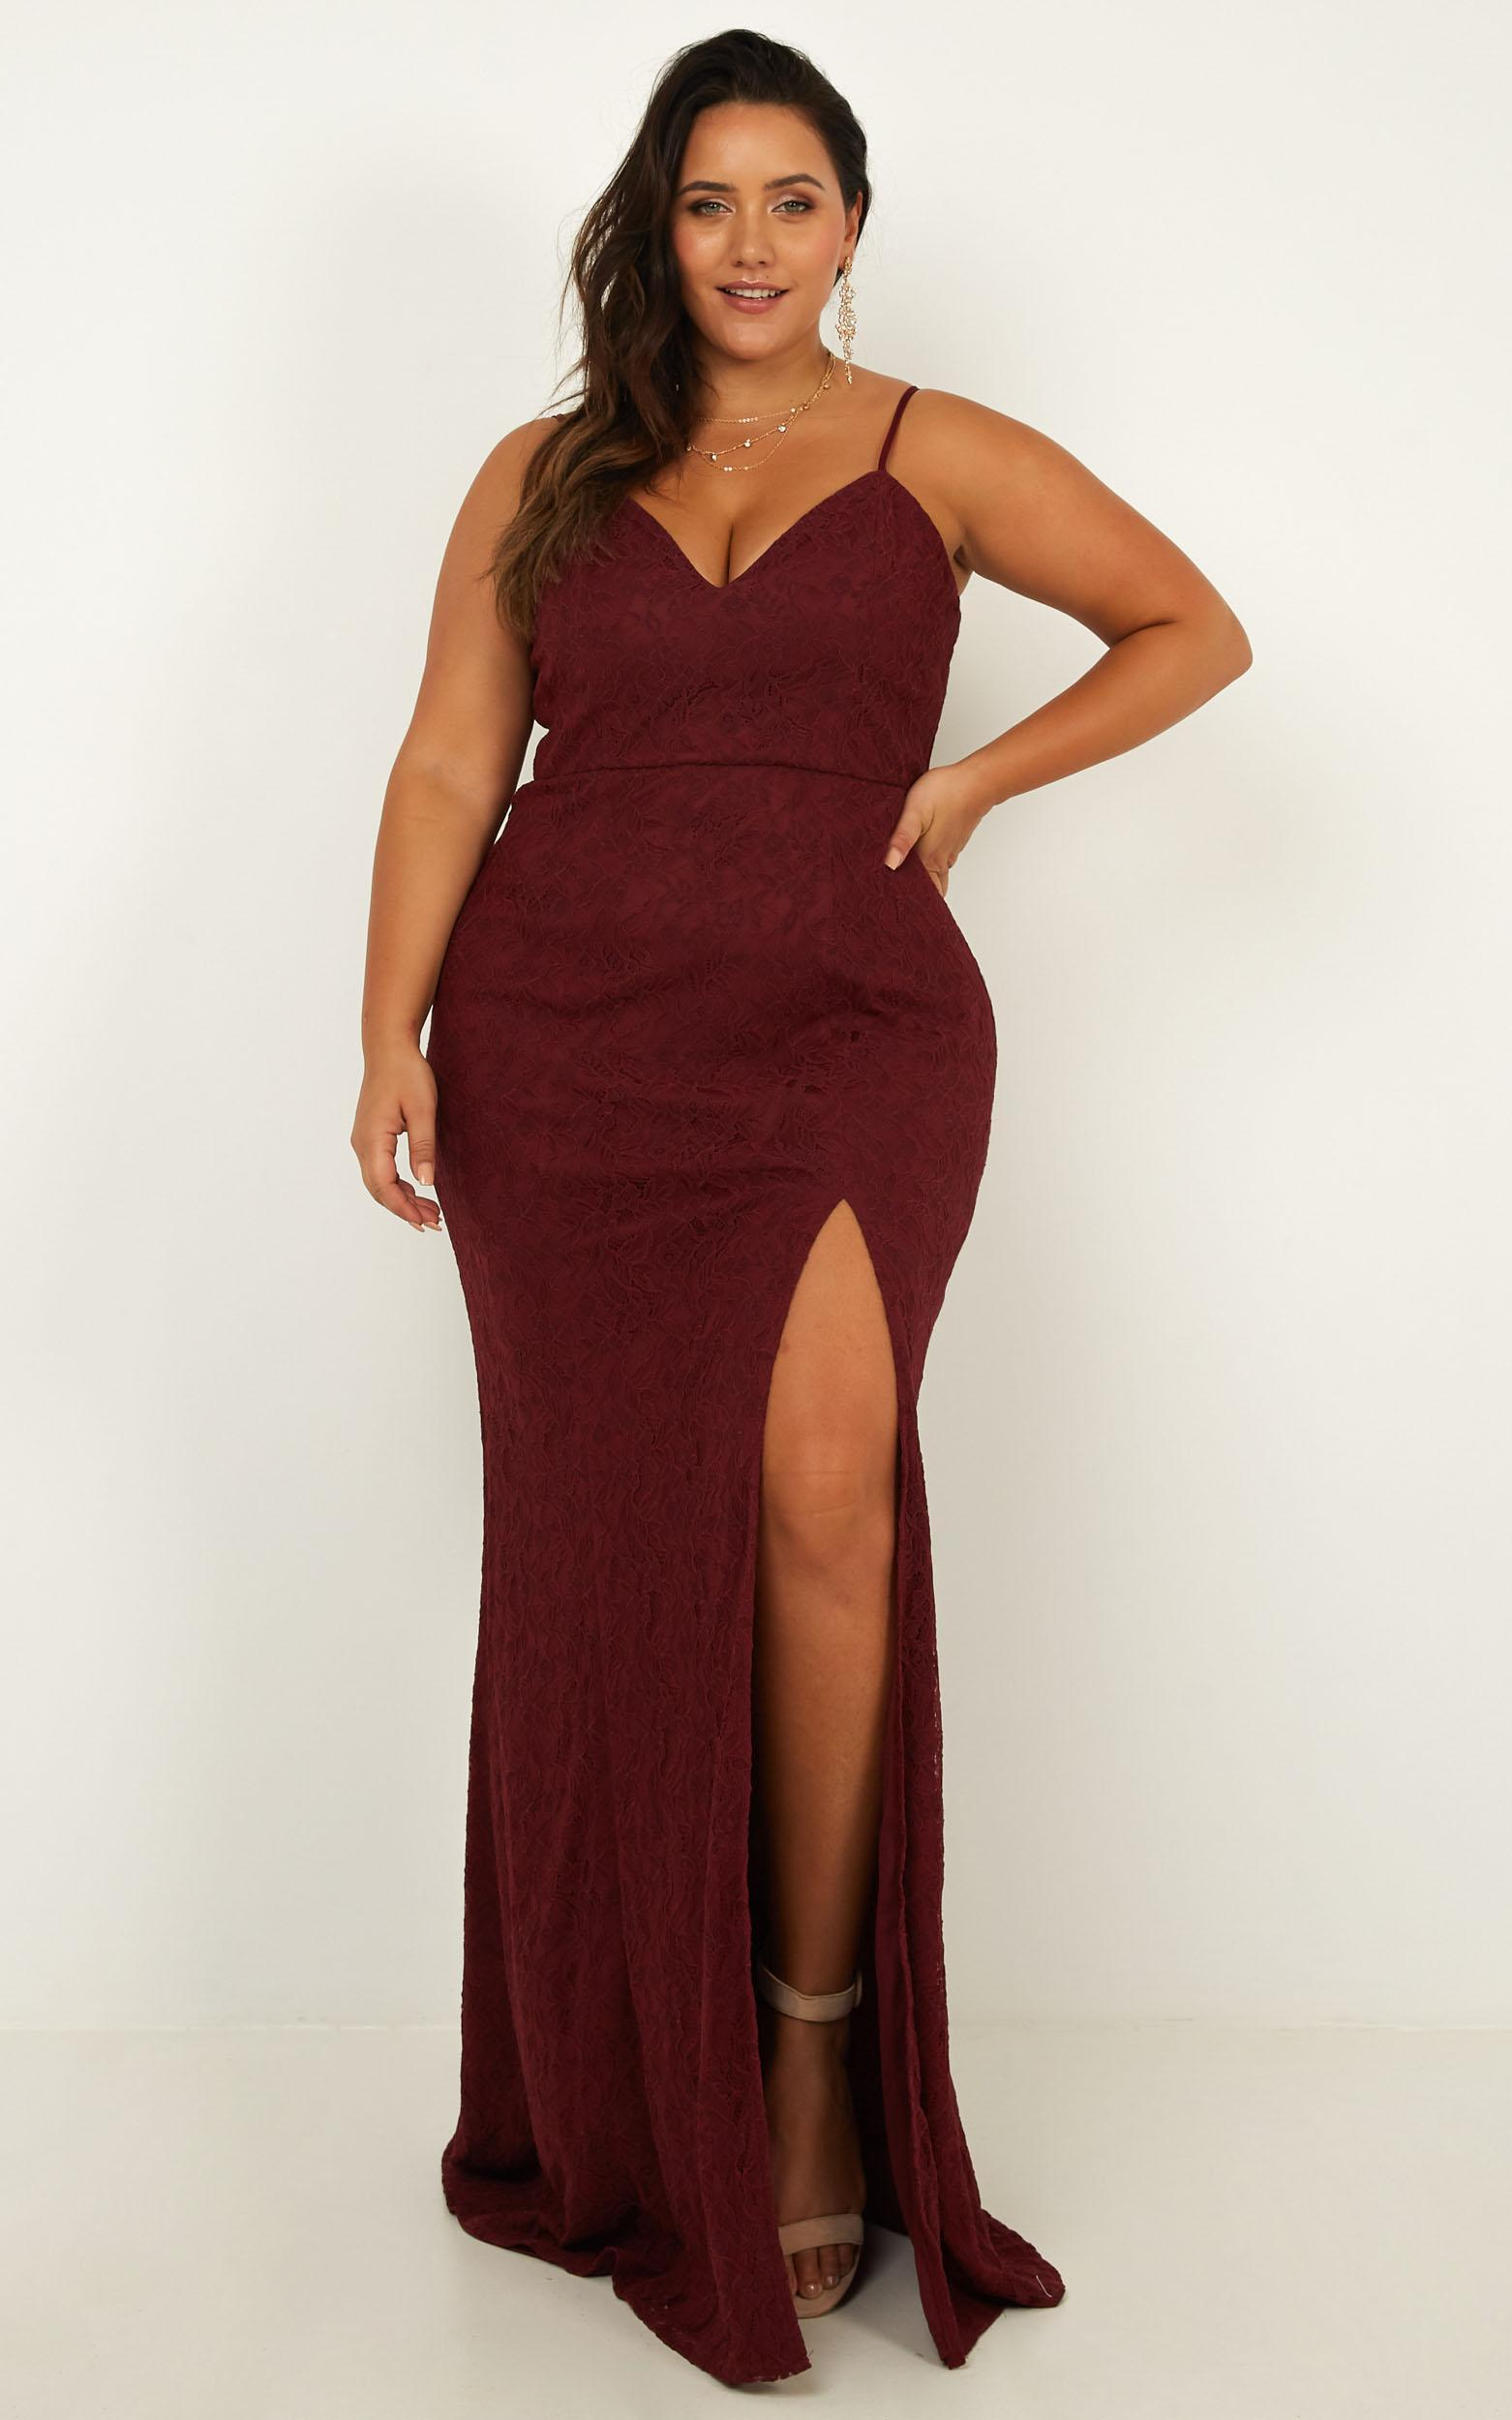 Always Extra Dress In wine lace - 20 (XXXXL), Wine, hi-res image number null